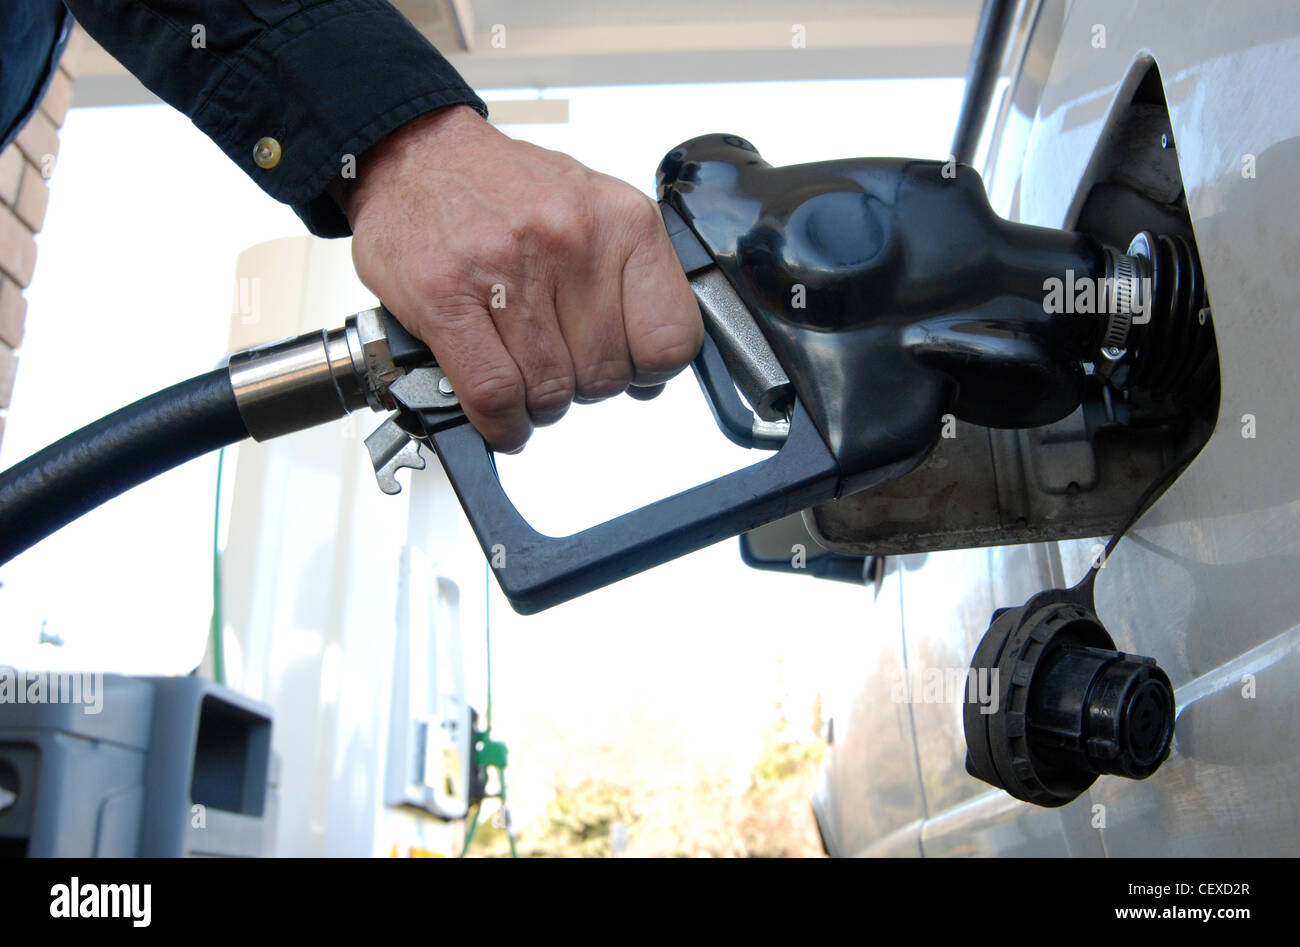 Close up of a customer's hand pumping fuel into car's gas tank. - Stock Image